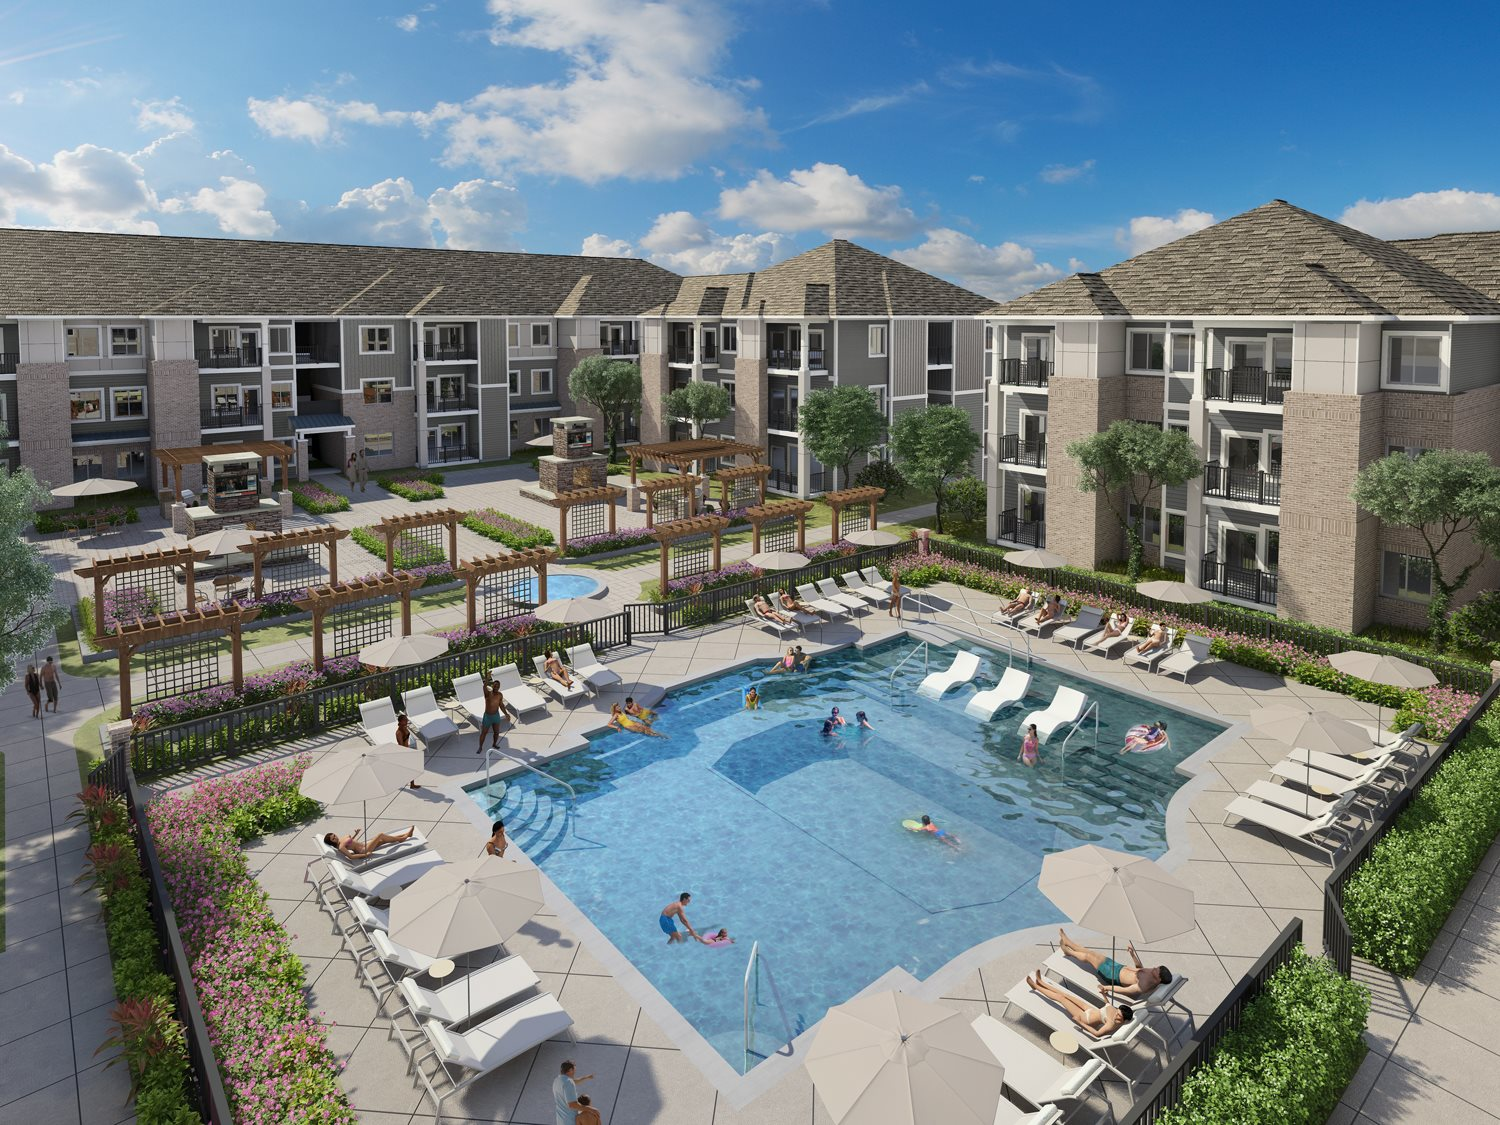 View of Pool for Property Rendering at The Haven at Rivergate in Charlotte, North Carolina 28273